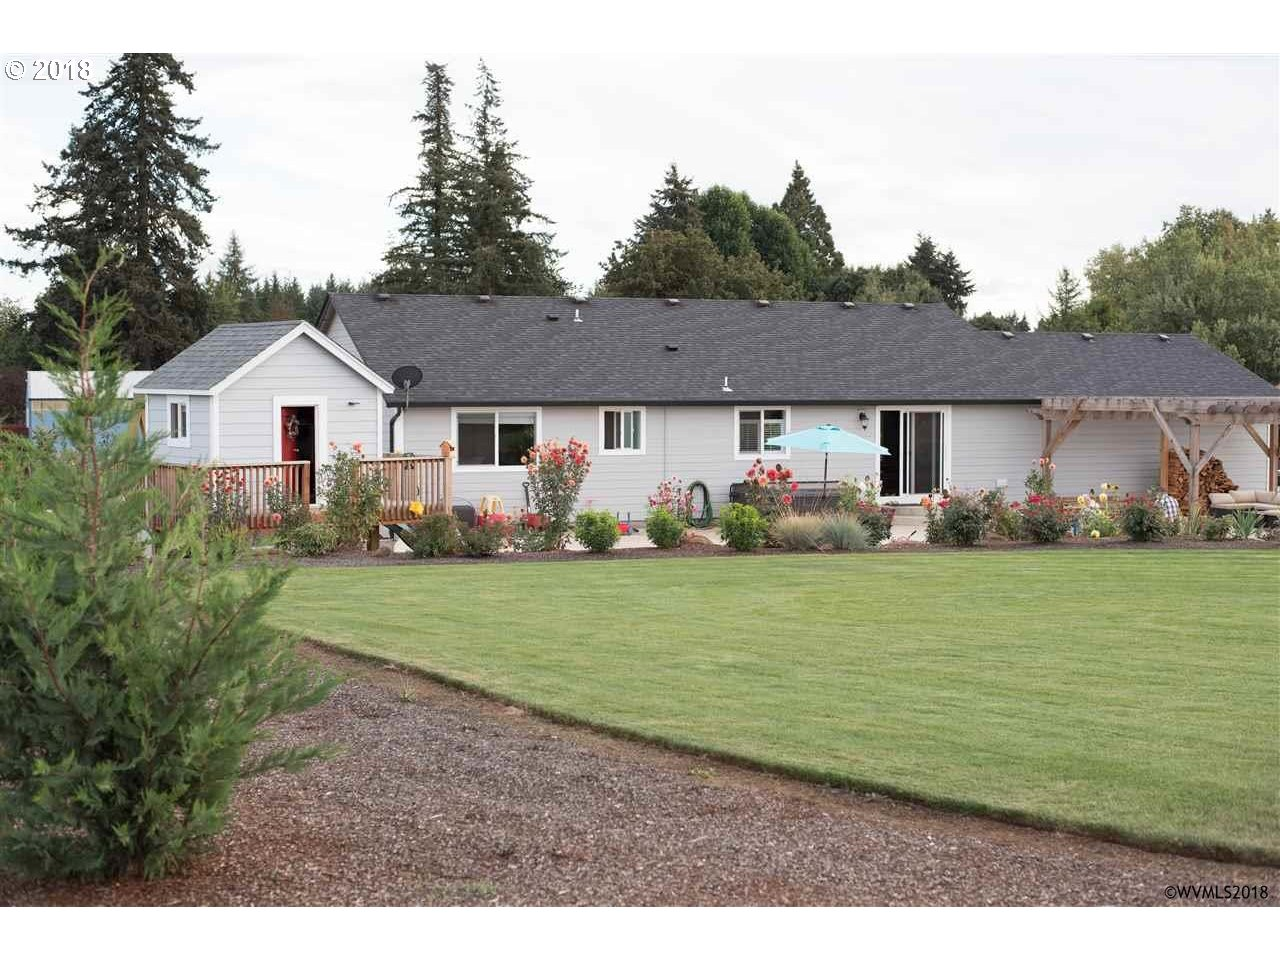 5975 BOWEN PL Salem, OR 97317 - MLS #: 18632843